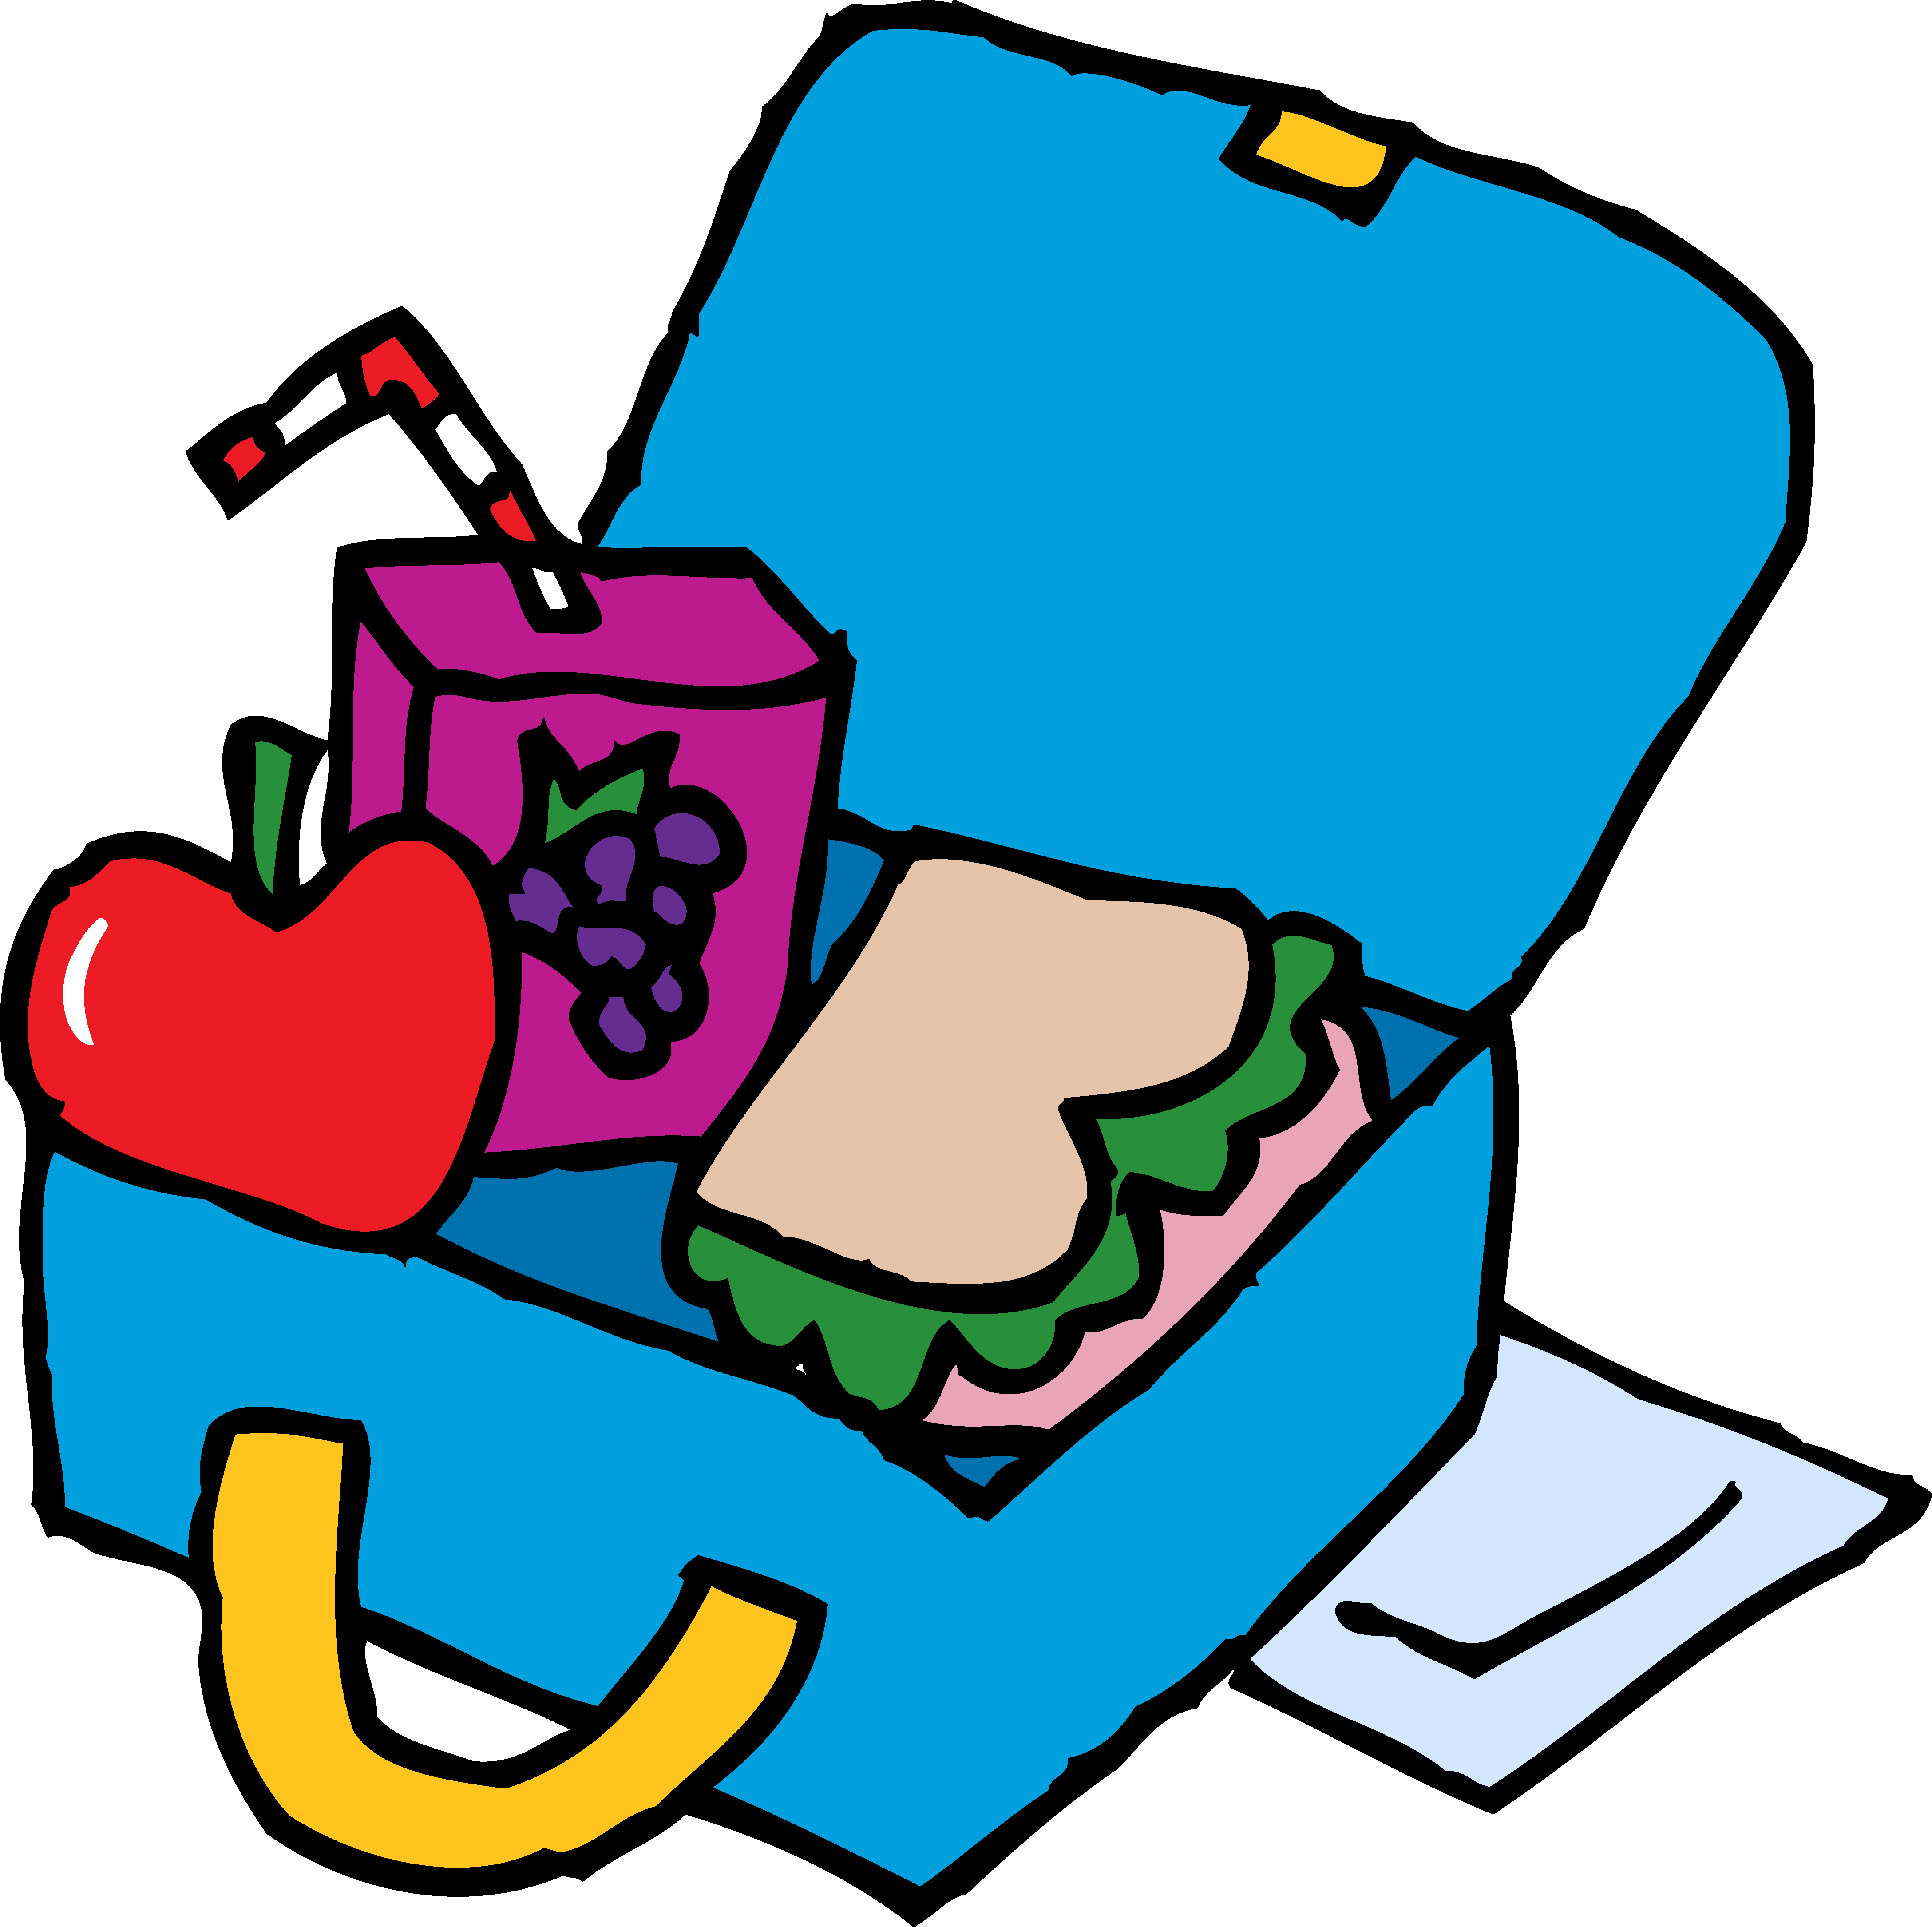 490 Lunch Box free clipart.